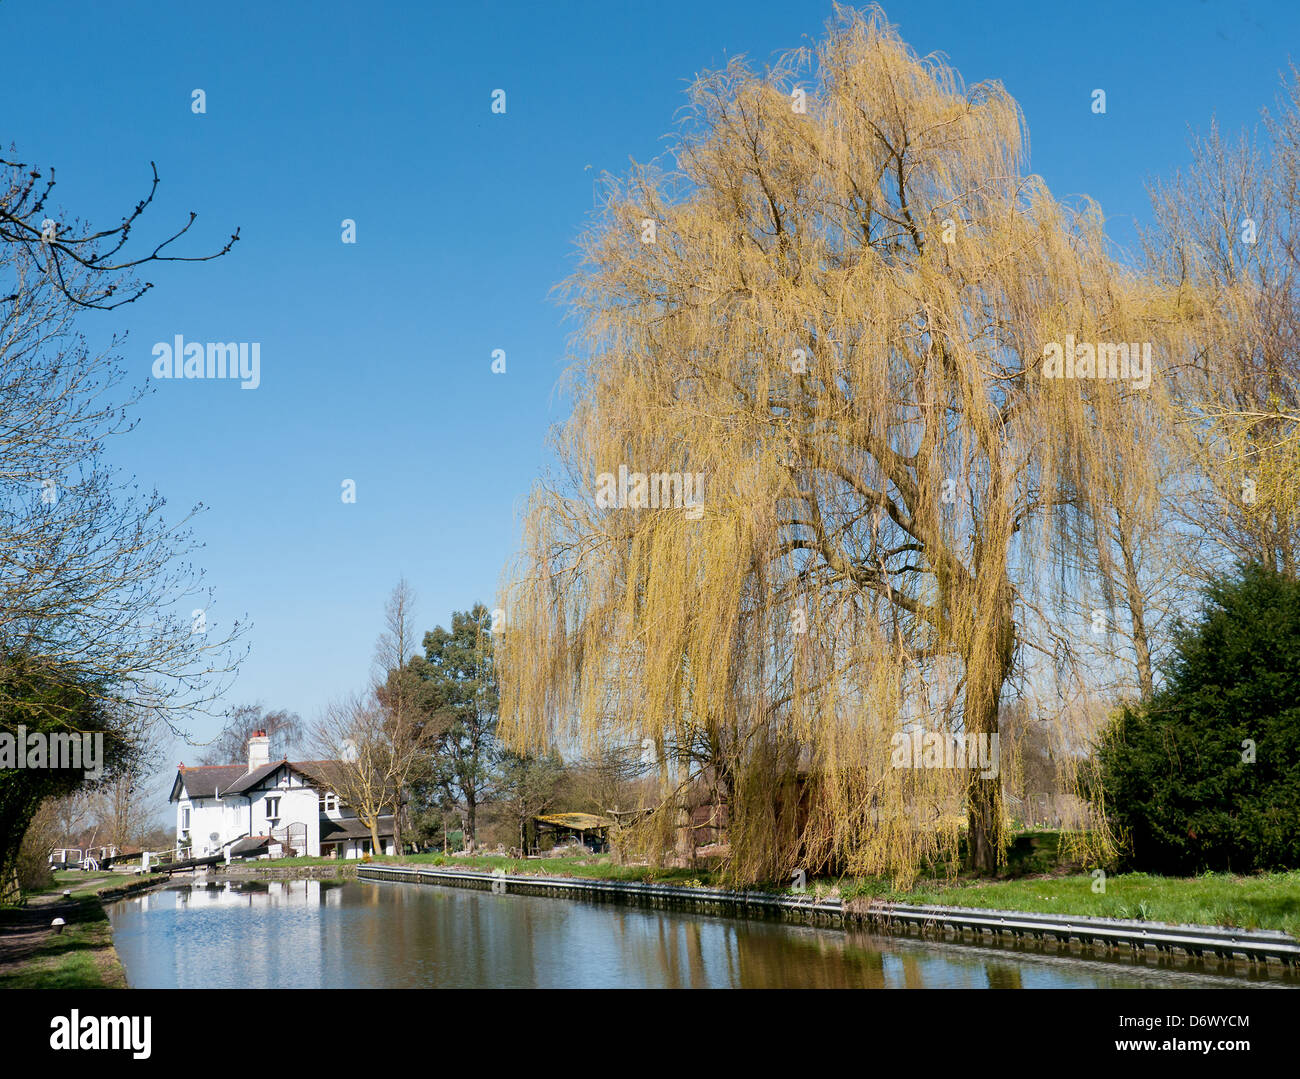 Lock and lock keepers house on the Grand Union Canal at Marsworth, Aylesbury, Bucks, UK - Stock Image